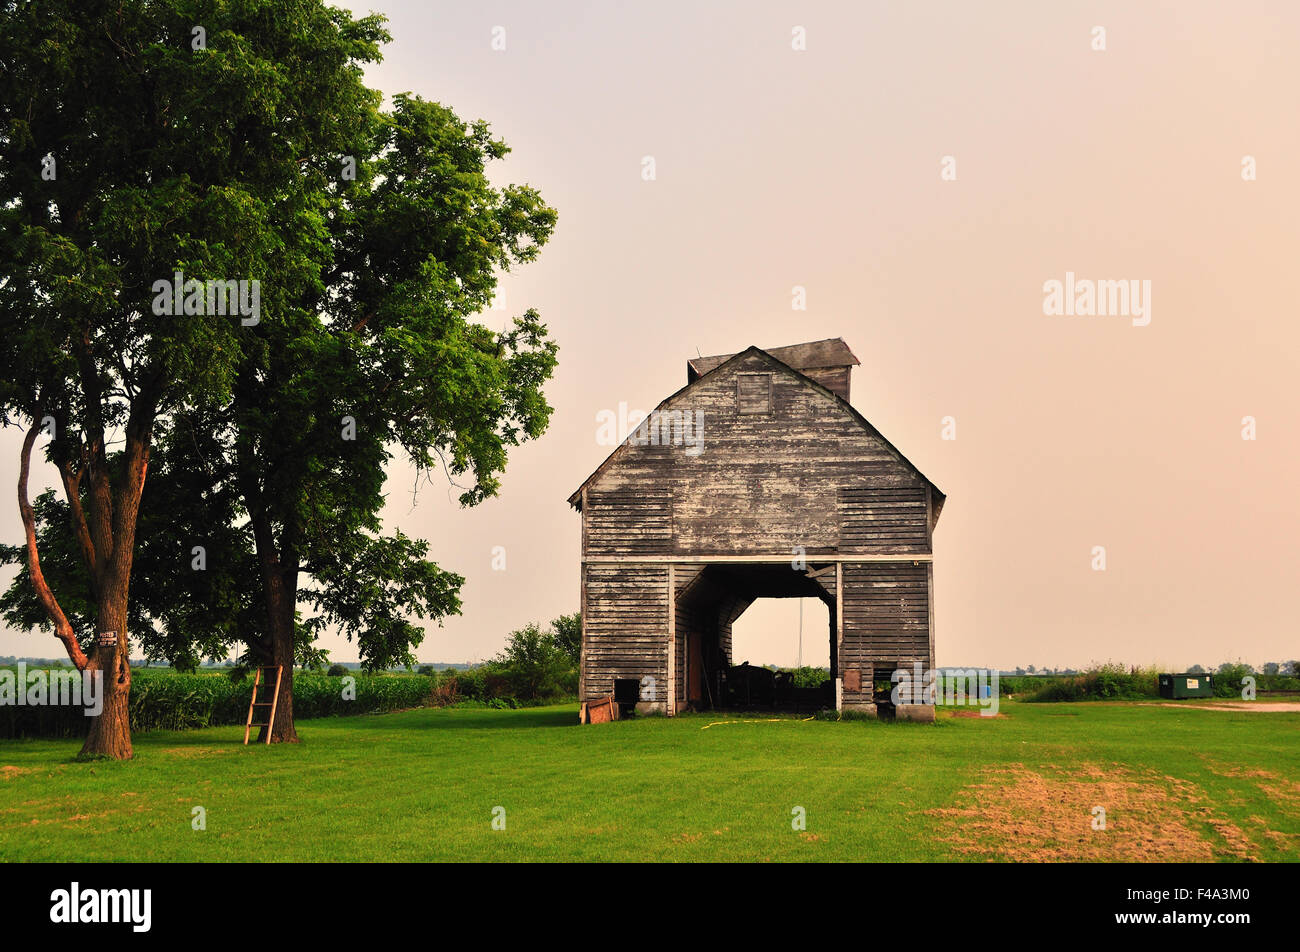 A veteran, time-weathered barn in need of paint and repair on a farm near Burlington, Illinois, USA. - Stock Image